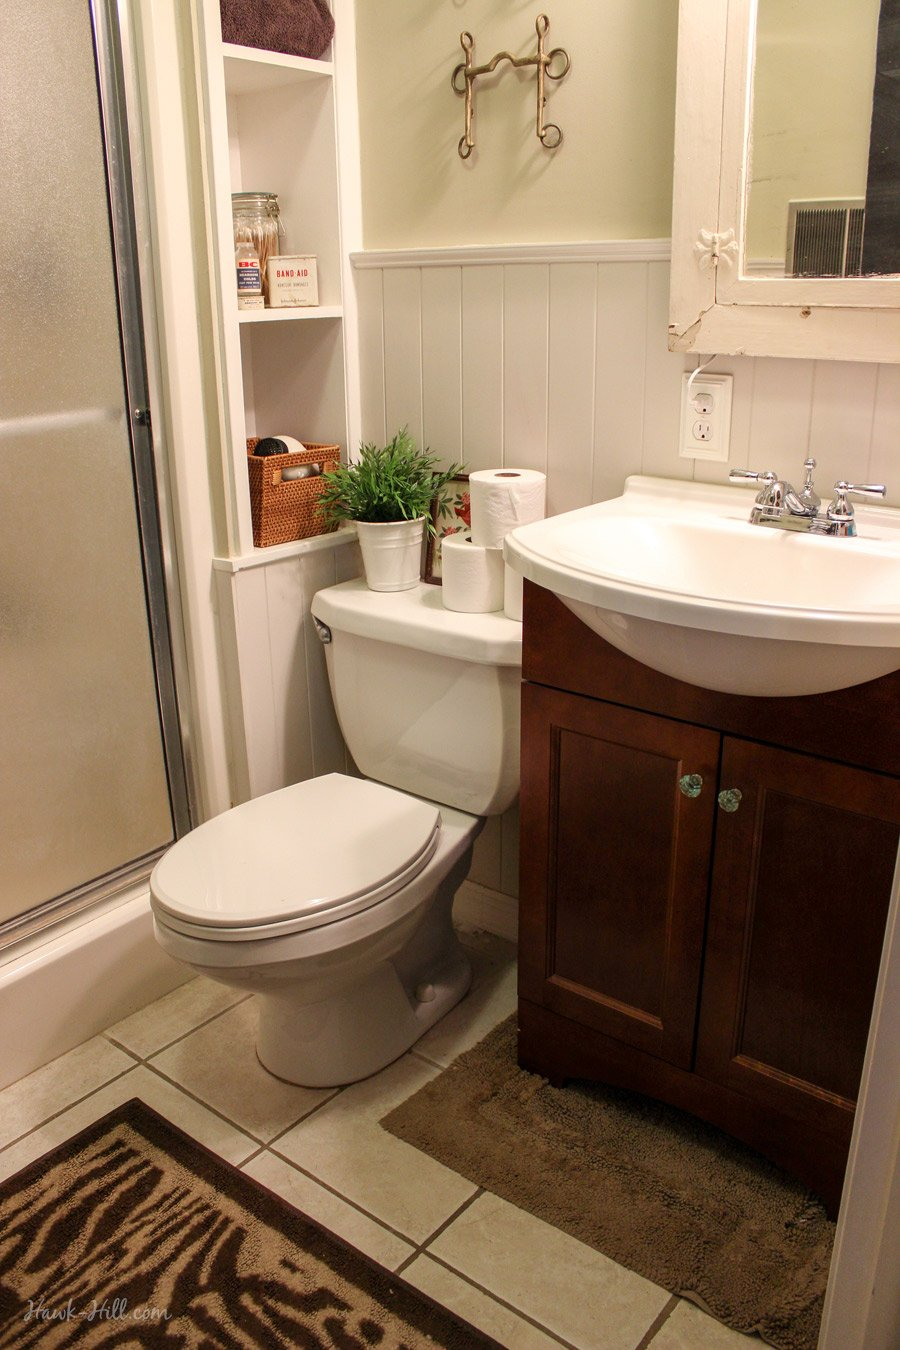 300 bathroom remodel installing shiplap or paneling over tile hawk hill. Black Bedroom Furniture Sets. Home Design Ideas